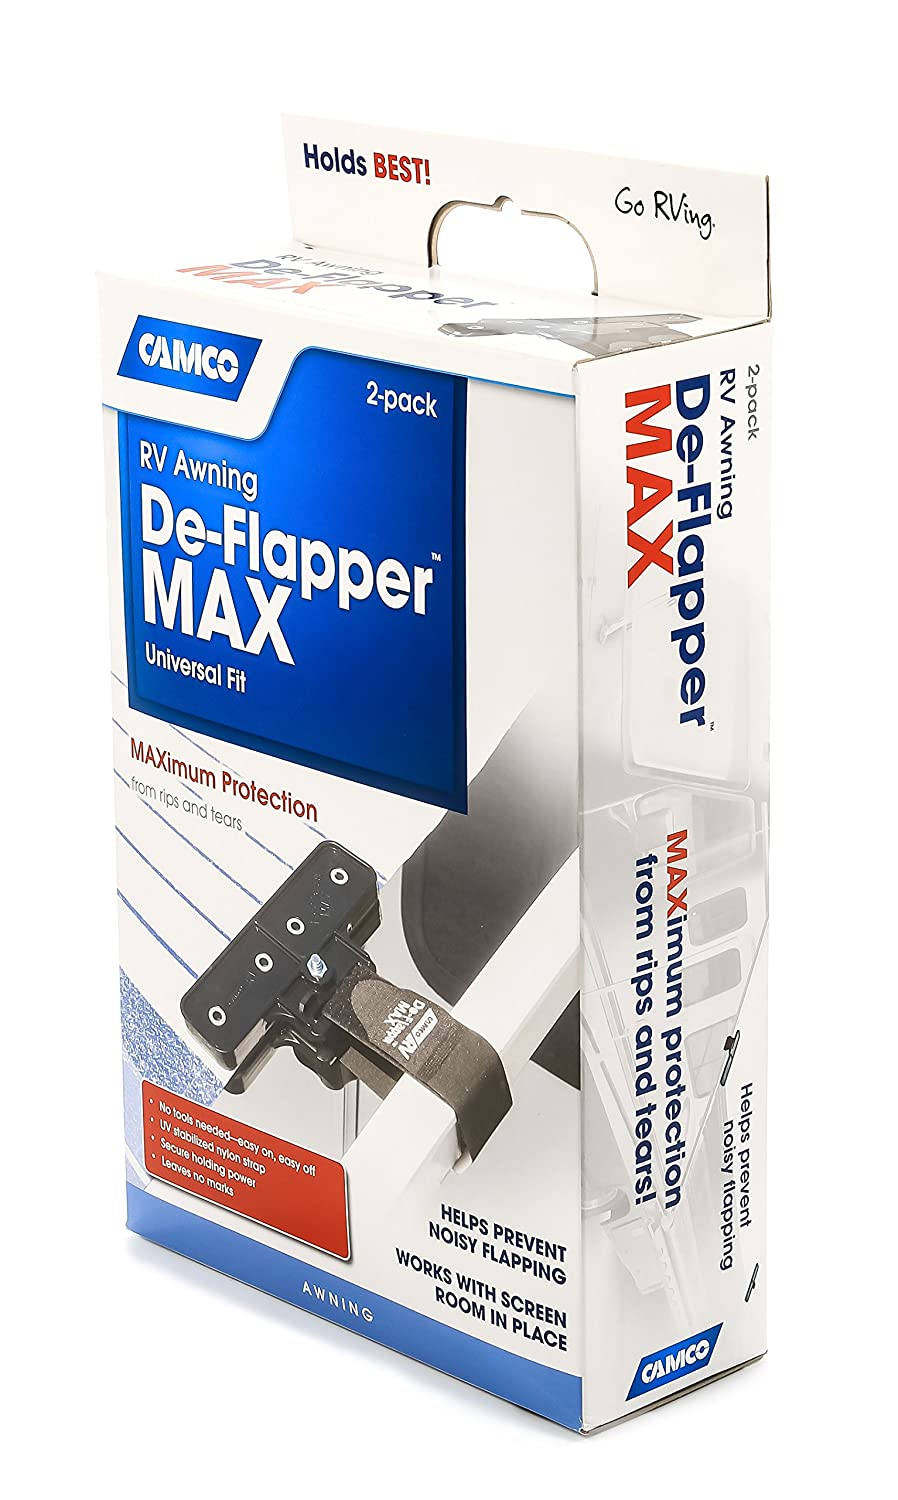 Protects Your RV Awning From Costly Rips and Tears 2 Pack Rust Resistant Camco Awning De-Flapper Max 42251